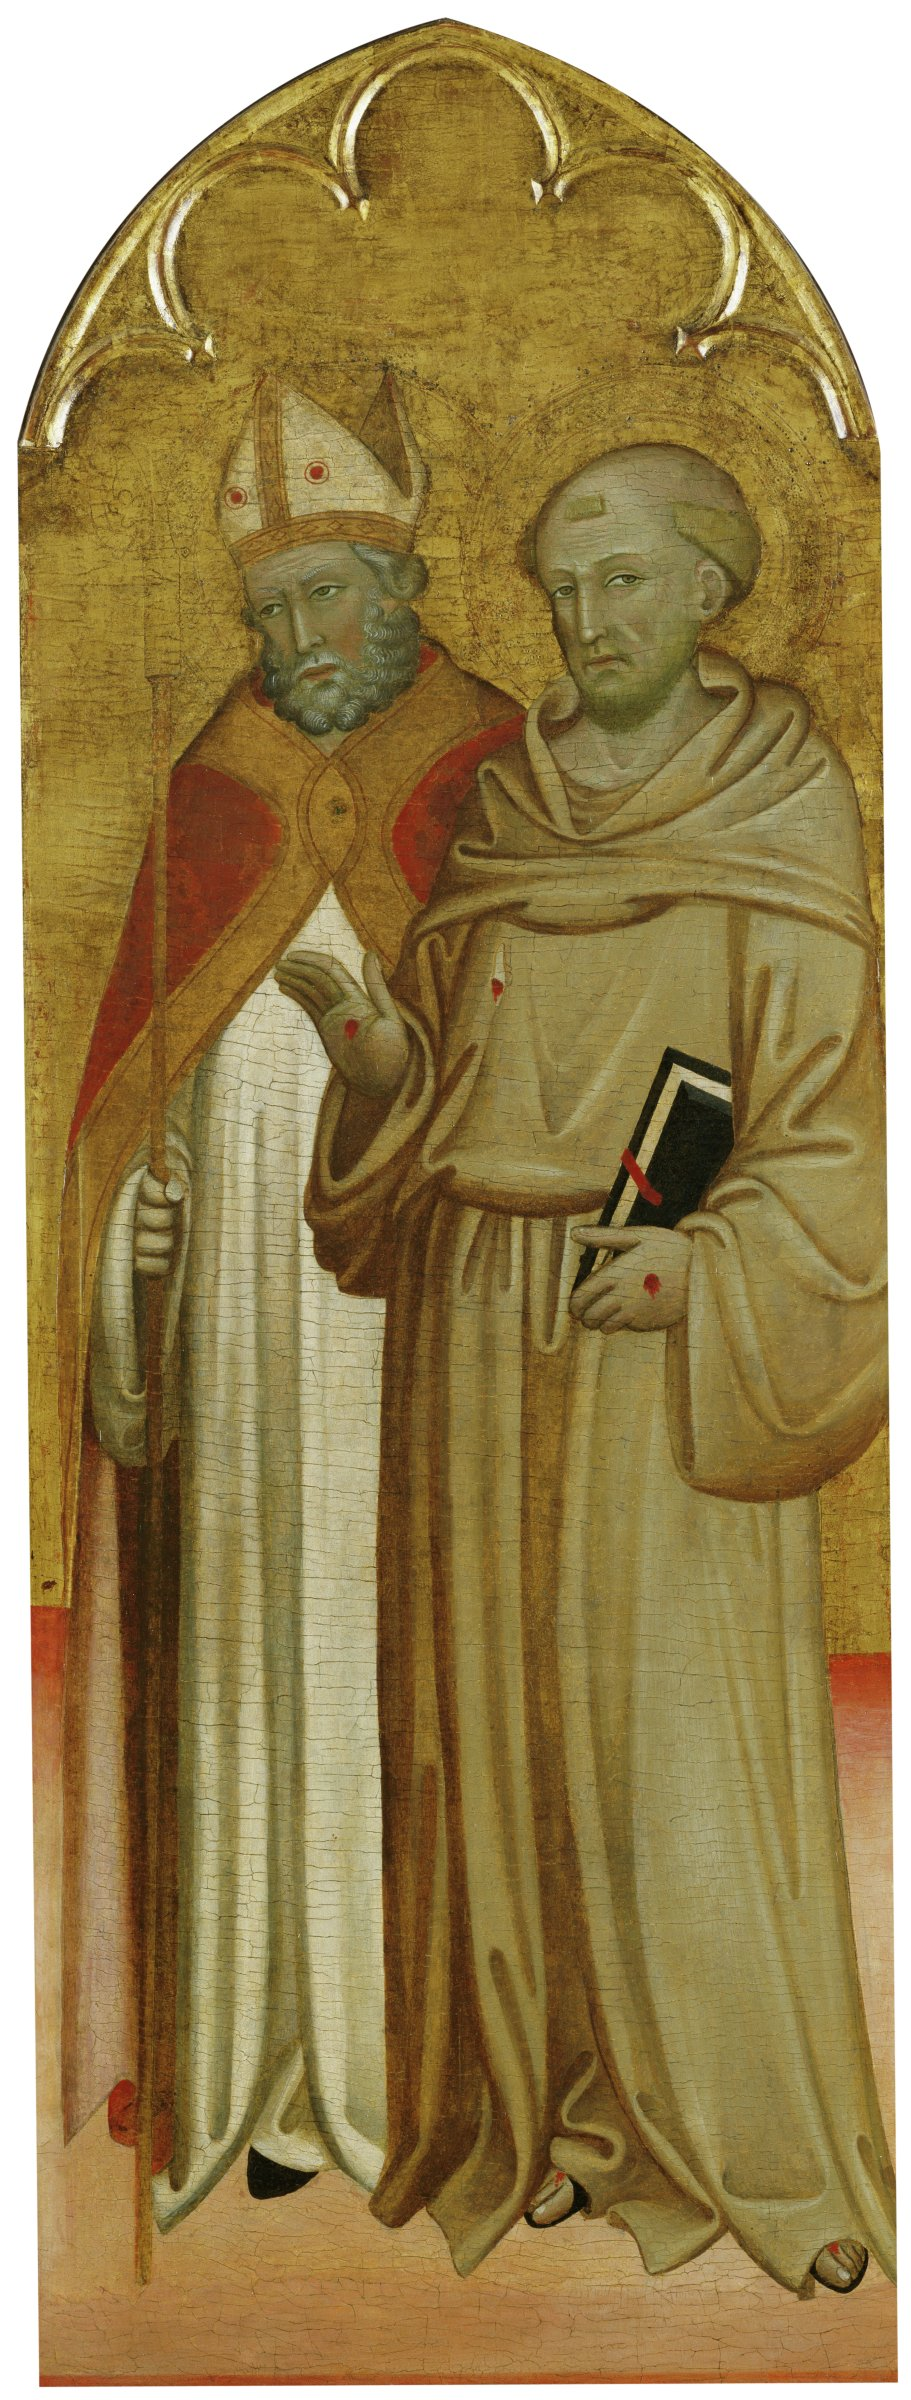 Saint Francis stands in his brown habit, displaying the stigmata or marks of the five wounds of Christ's crucifixion. An unidentified bishop saint stands behind him.